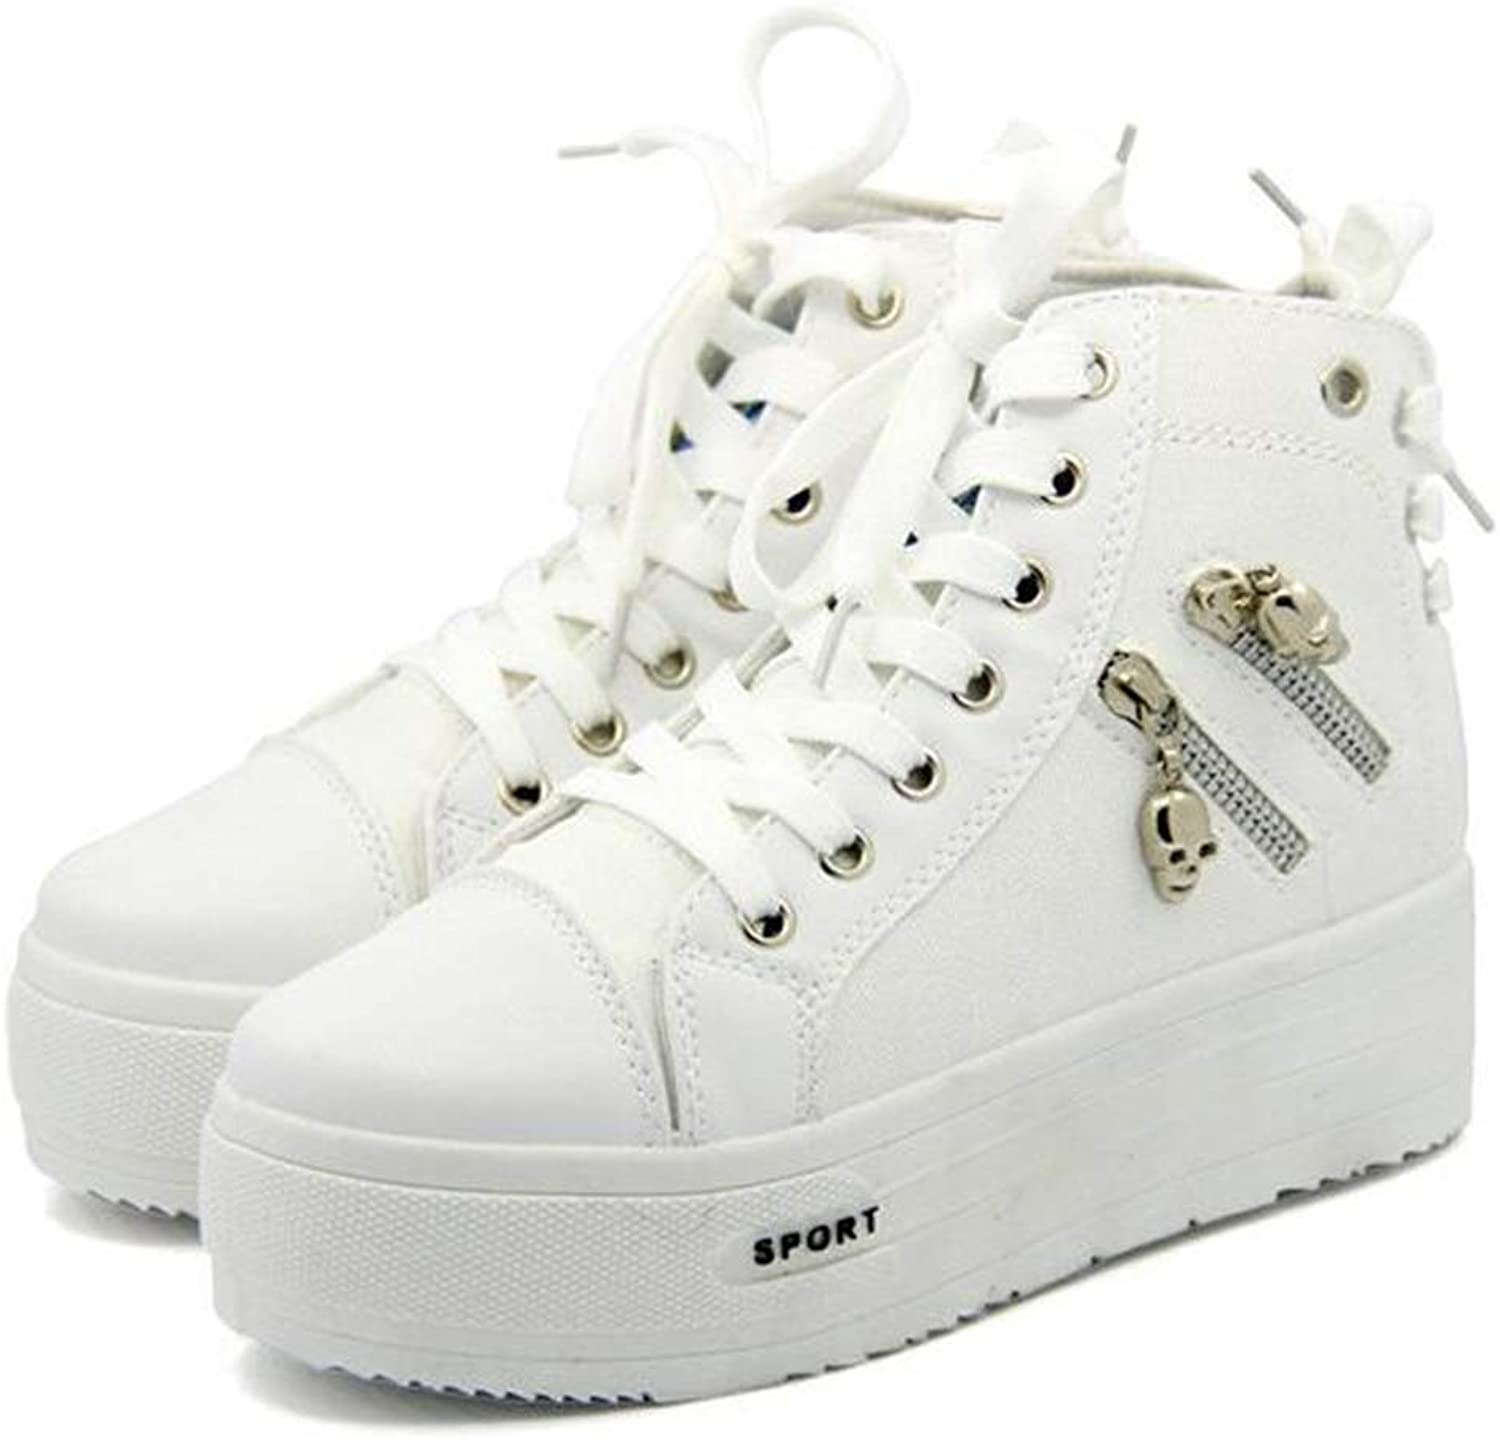 Cloudless Women's Fashion Platform Canvas High Top All Sneakers